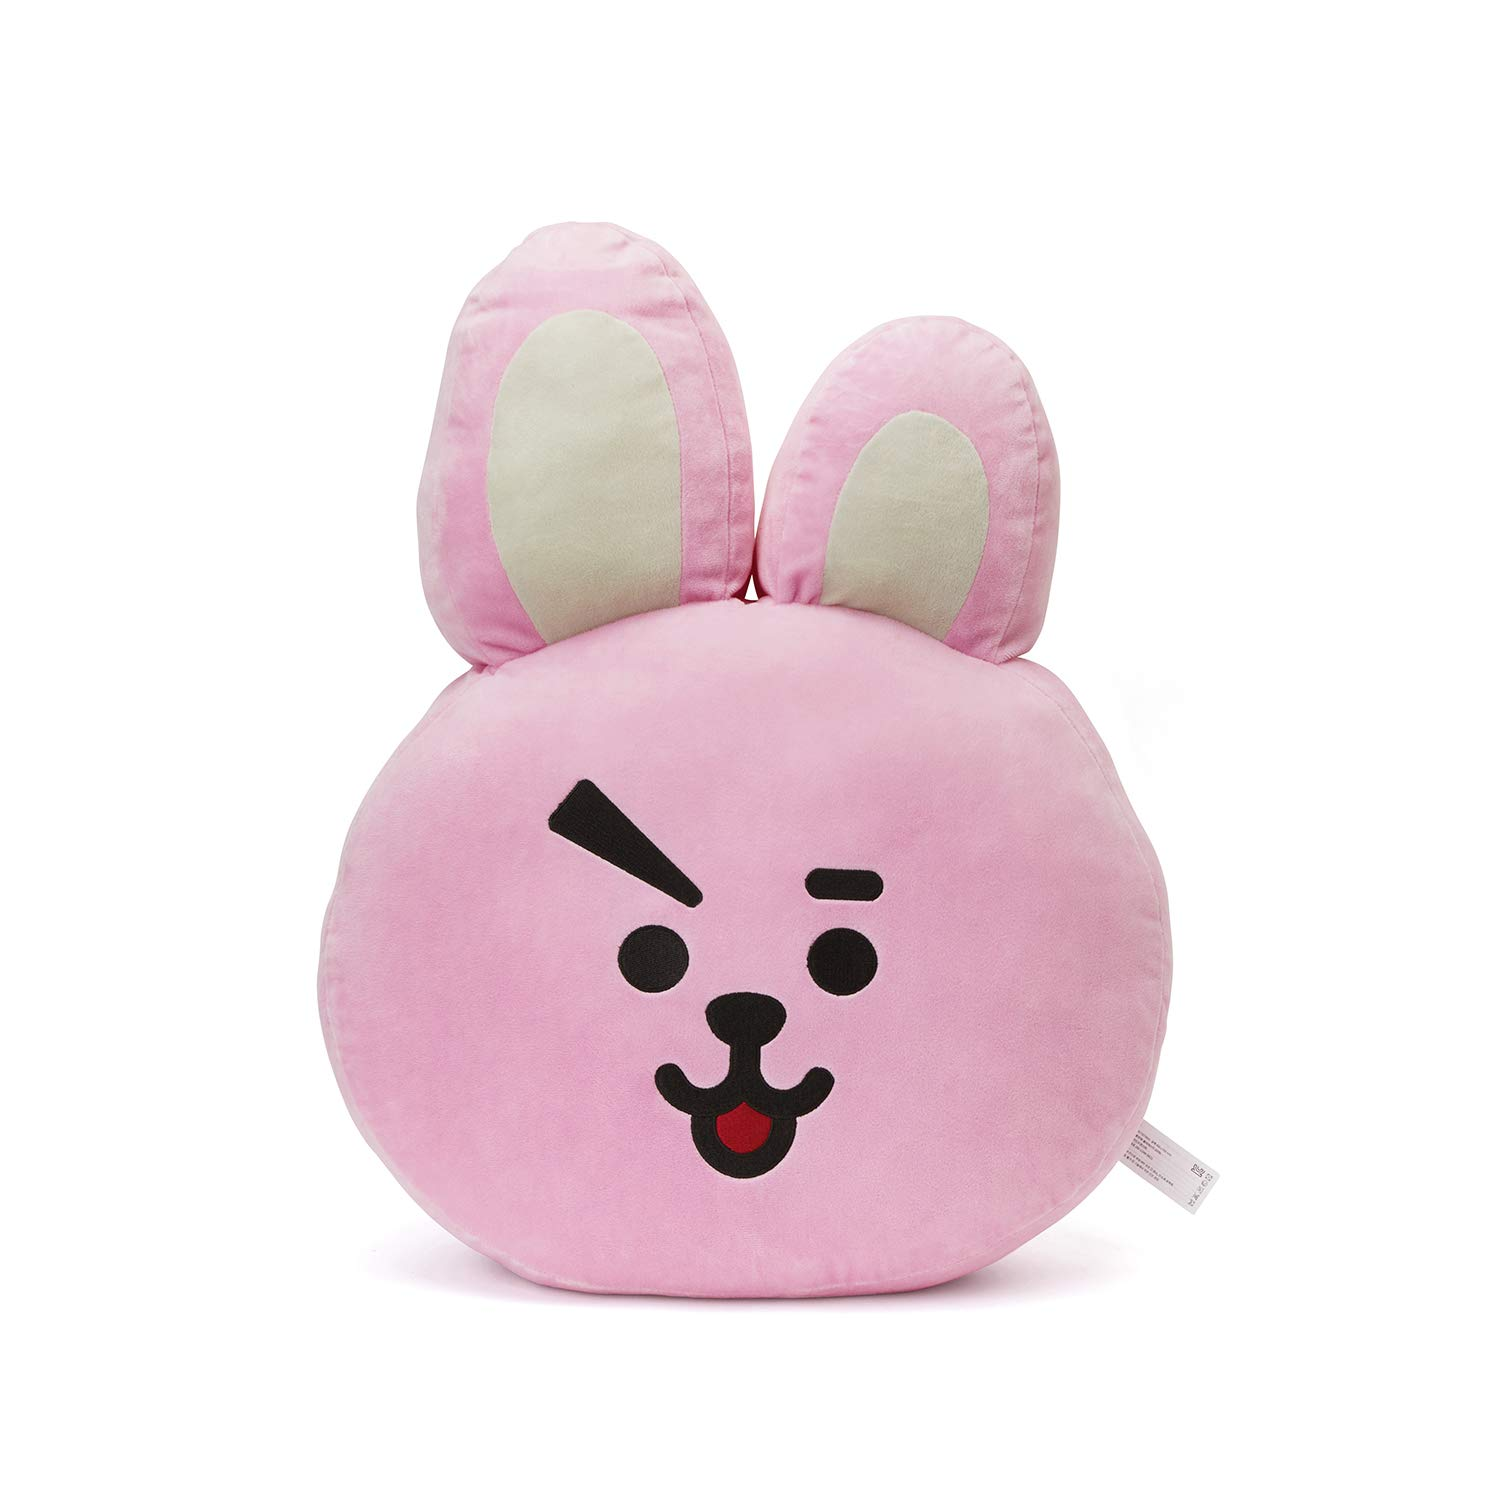 LINE FRIENDS BT21 Official Merchandise Cooky Smile Decorative Throw Pillows Cushion, 11 Inch by LINE FRIENDS (Image #1)